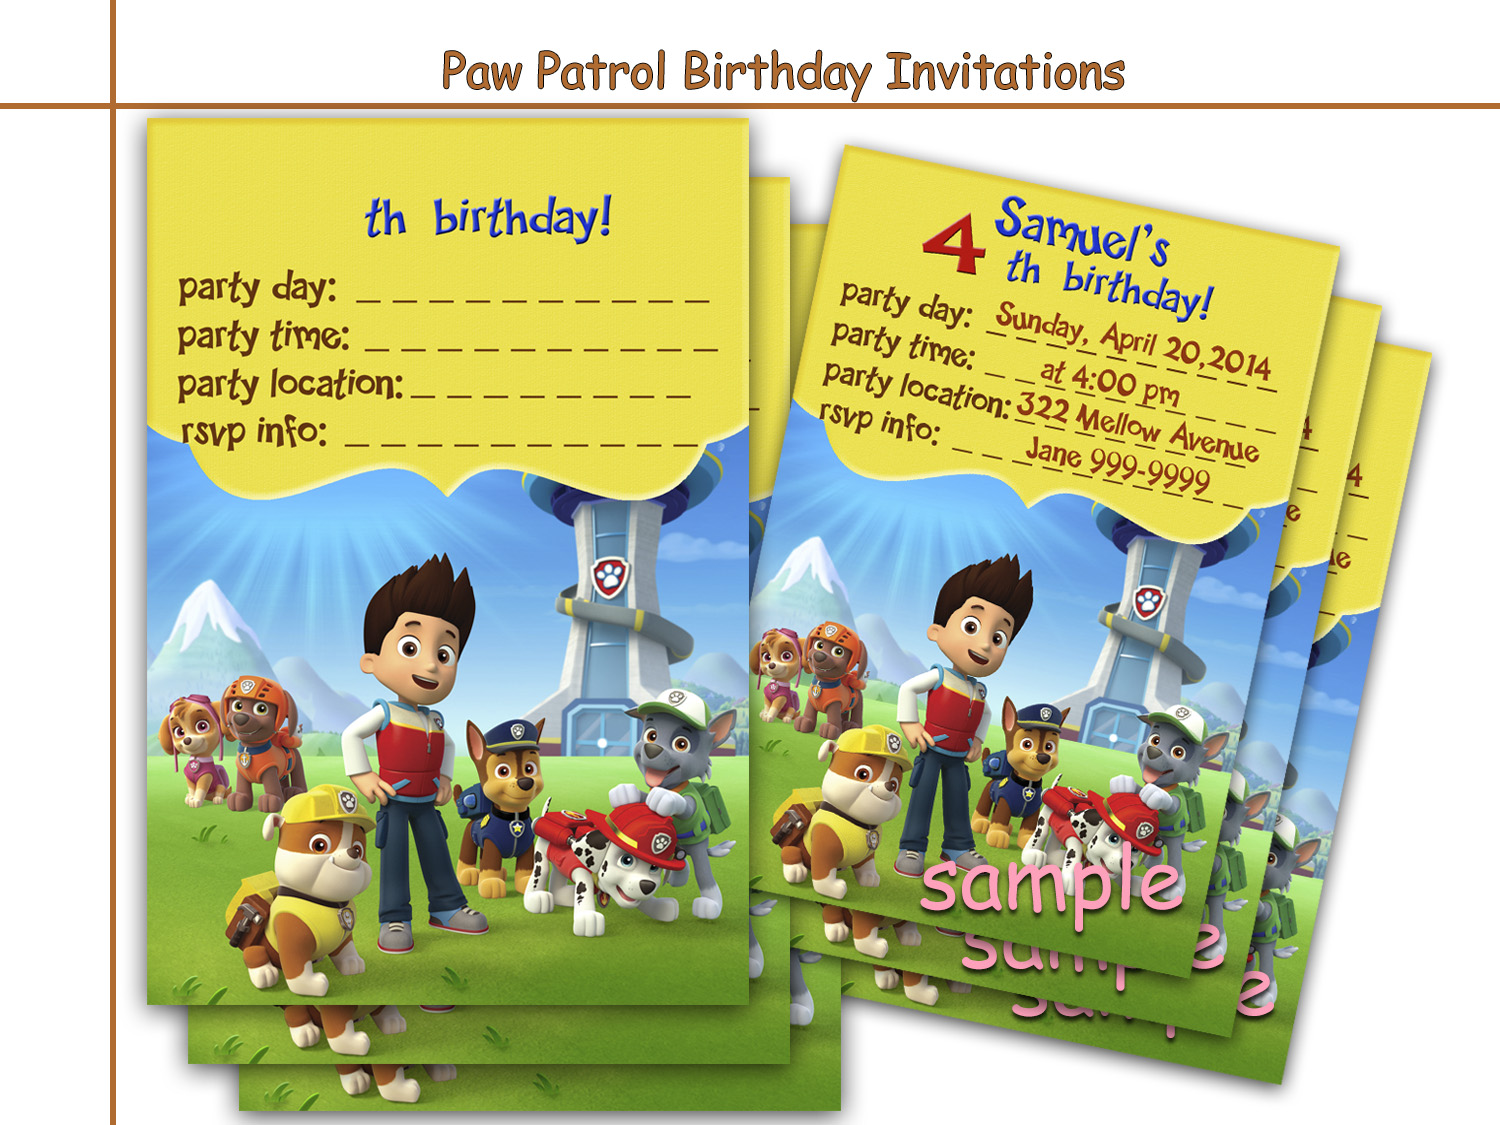 Amazing paw patrol birthday invitations by holidaypartystar on zibbet filmwisefo